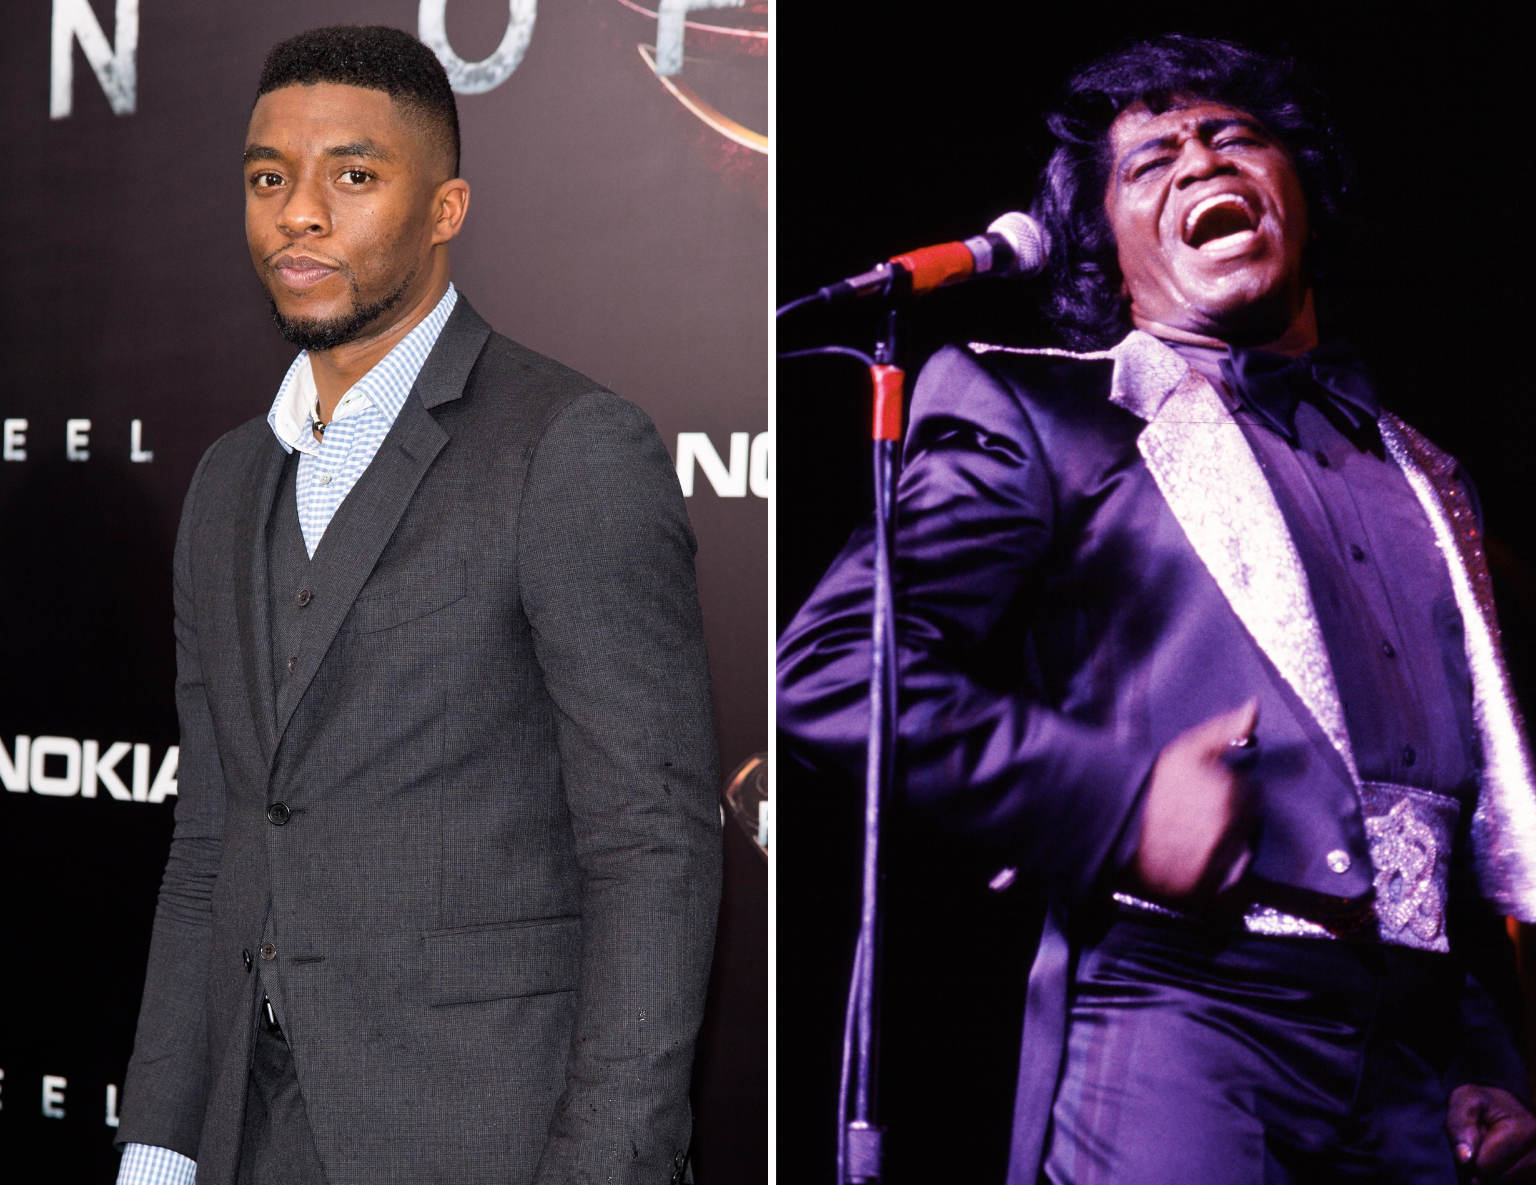 Chadwick Boseman Daughter 28 Images Look Stan Lee Shares Photo With Black Panther Star The